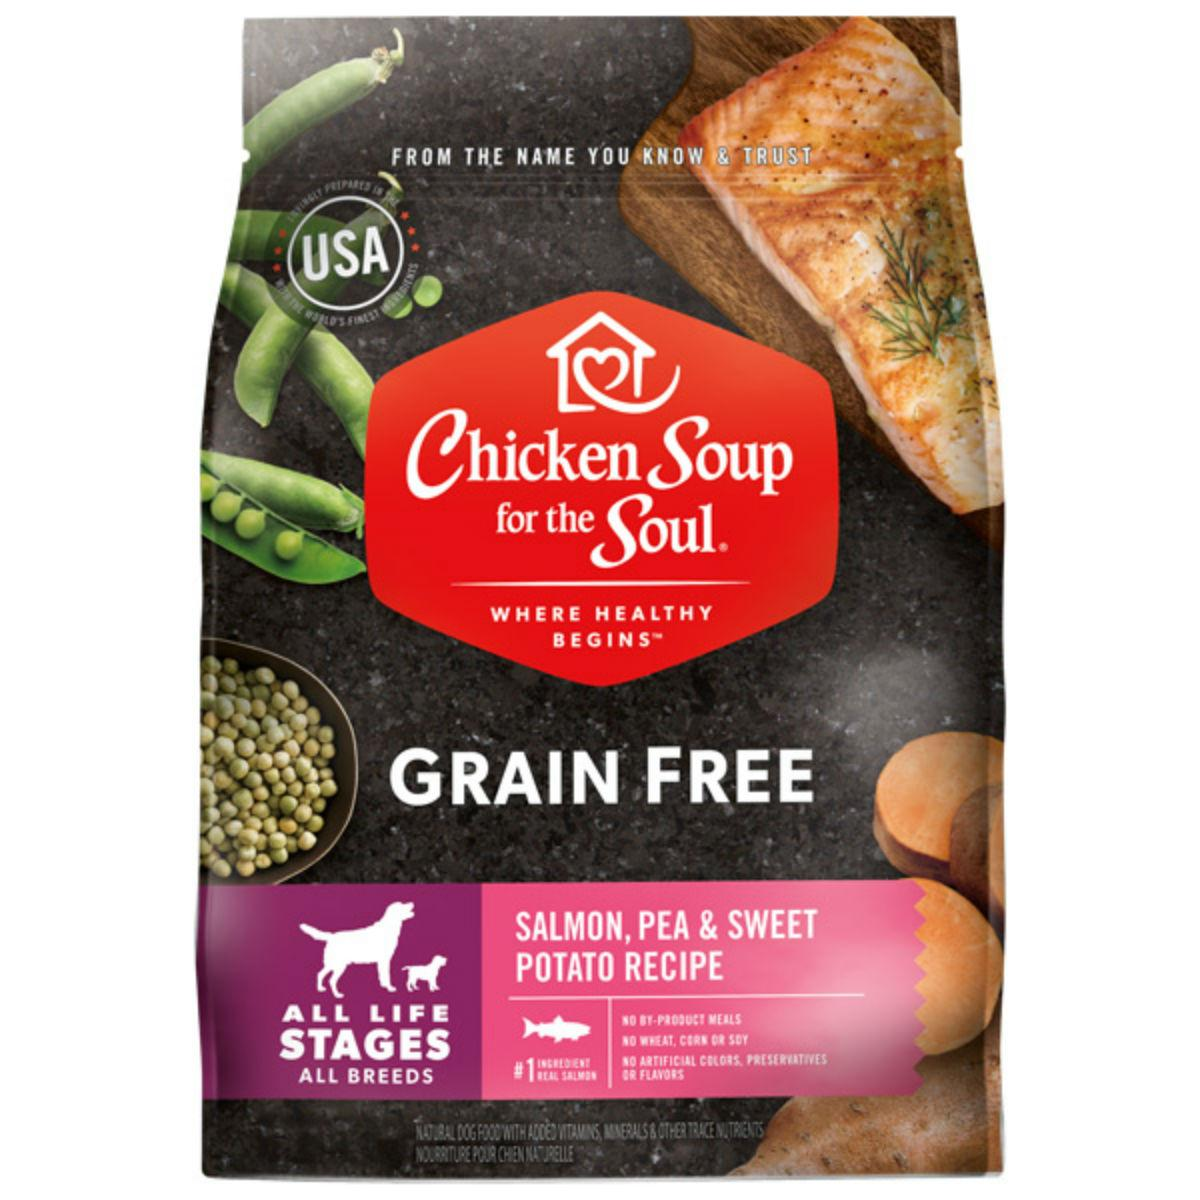 Chicken Soup for the Soul Grain Free All Life Stages Dog Food - Salmon, Pea & Sweet Potato Recipe